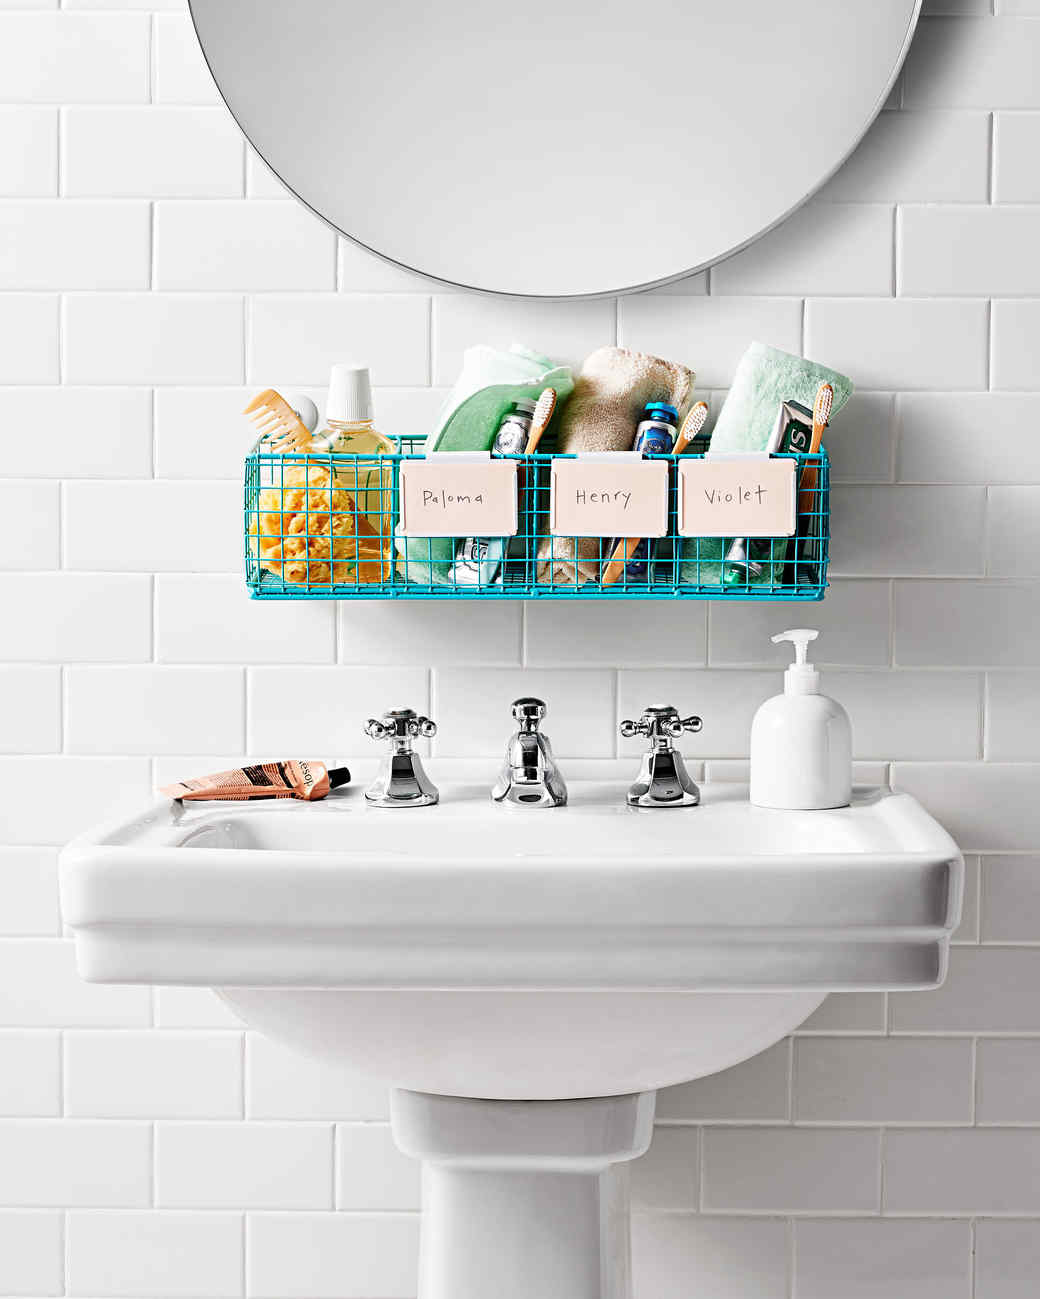 Bathroom Organization Tips Martha Stewart: how to organize bathroom